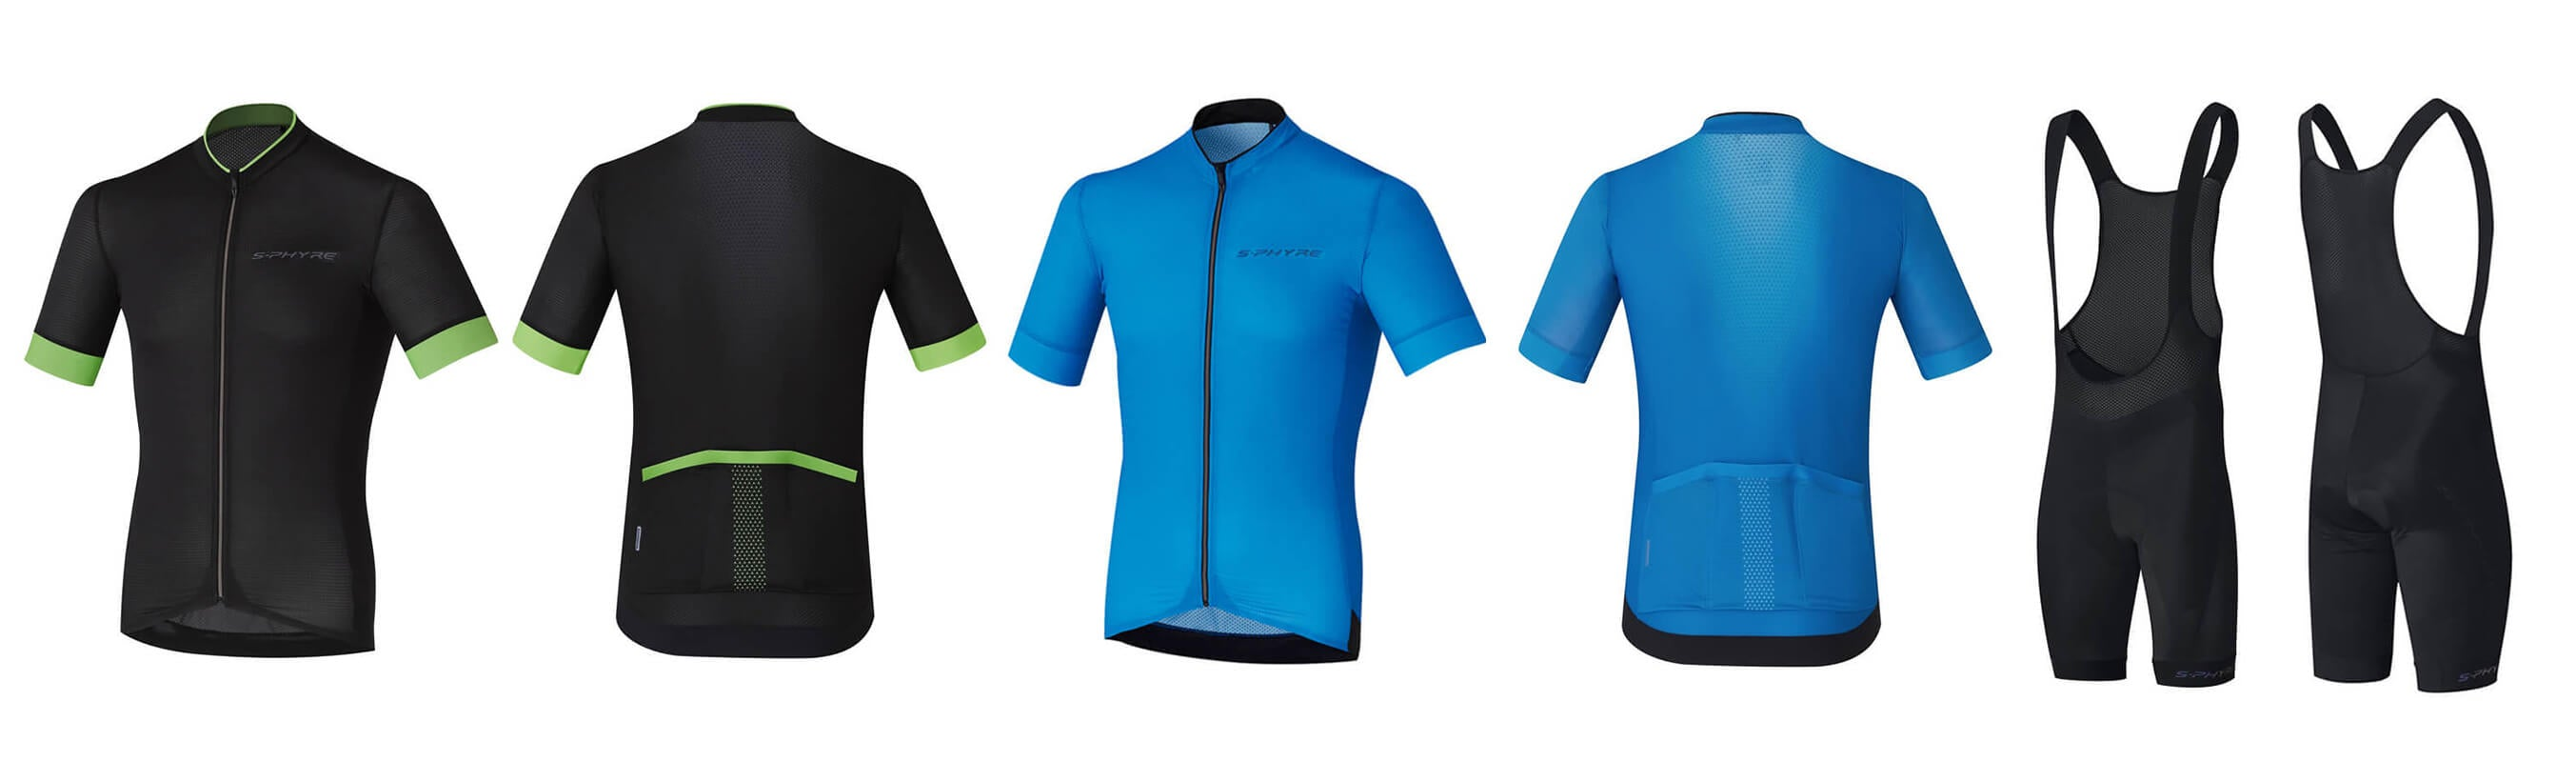 Shimano S-Phyre Clothing Review - Contender Bicycles